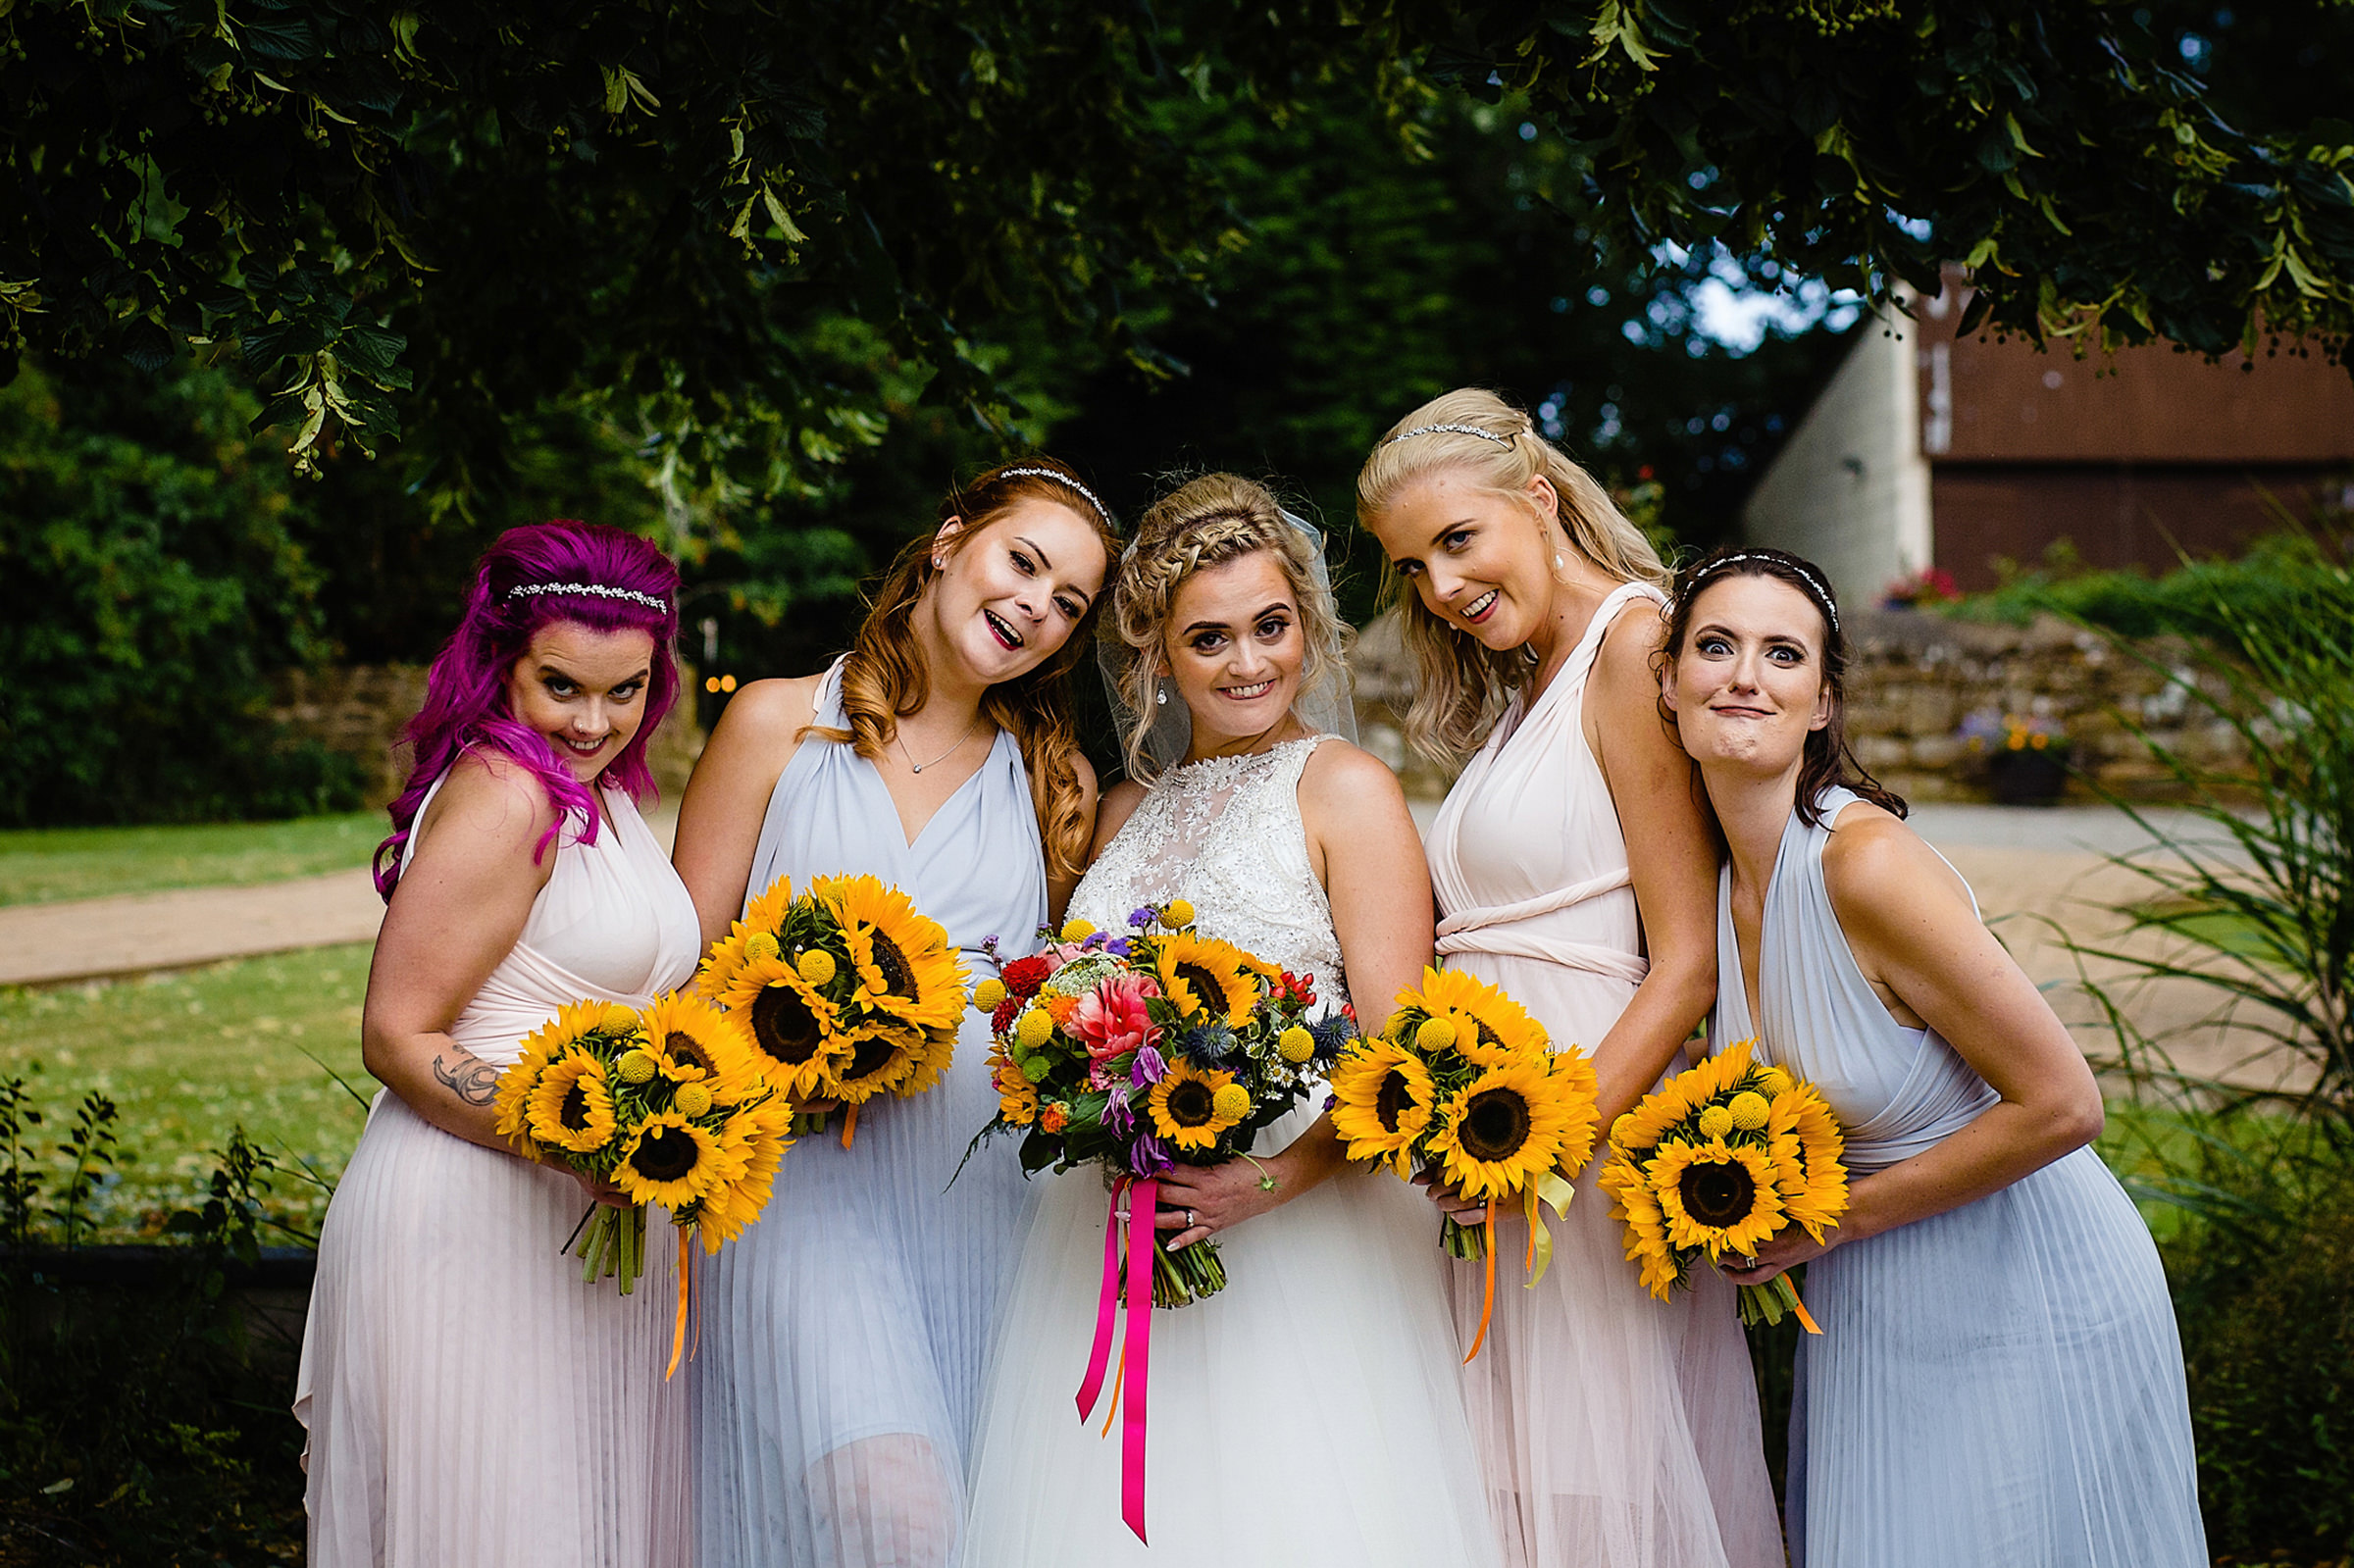 Bridal party with sunflower bouquets making faces for the camera - photo by Emma + Rich